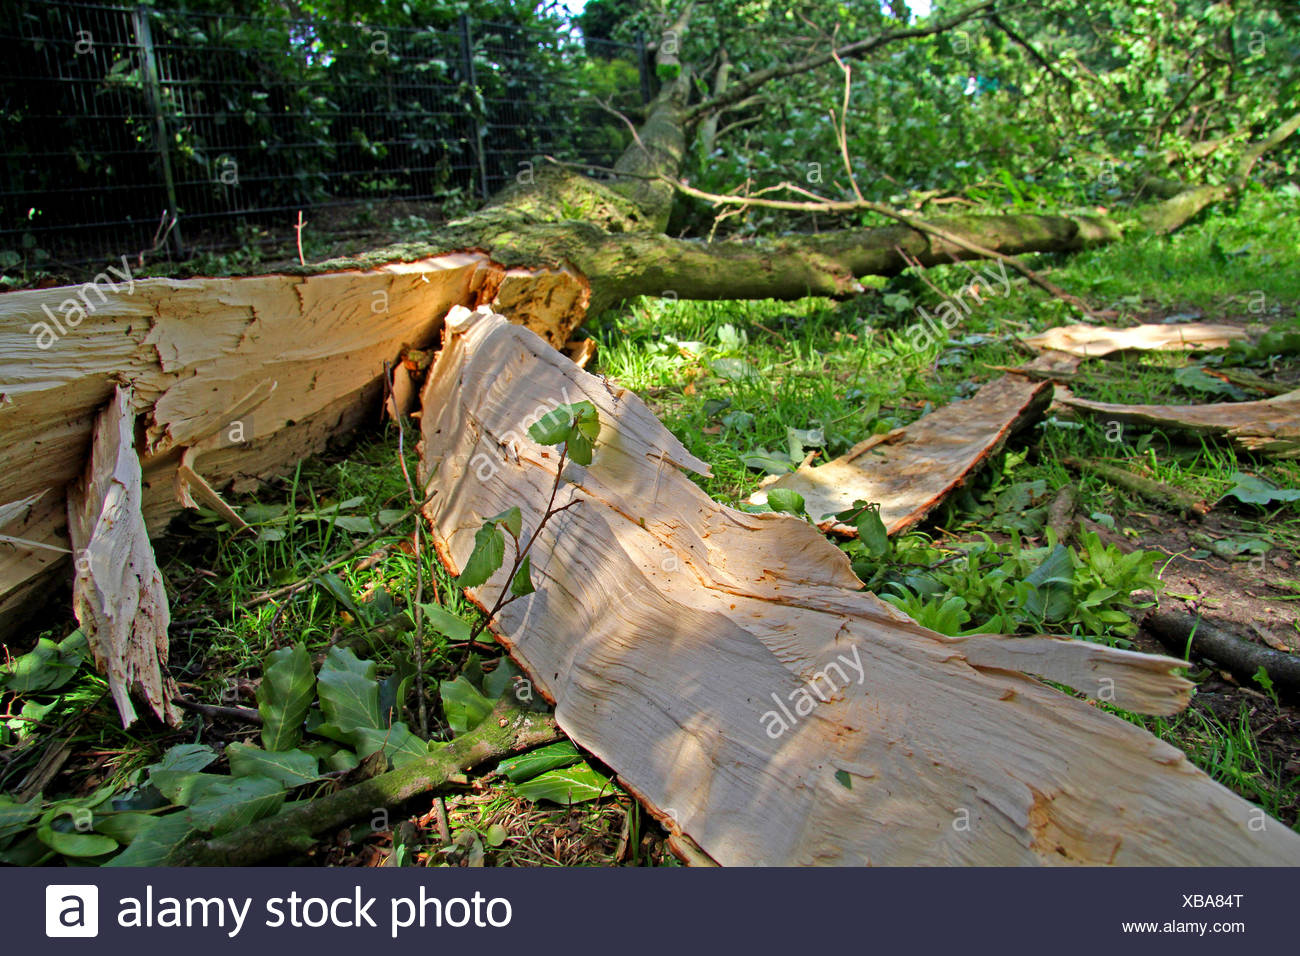 broken trunk after storm front Ela at 2014-06-09, Germany, North Rhine-Westphalia, Ruhr Area, Essen - Stock Image